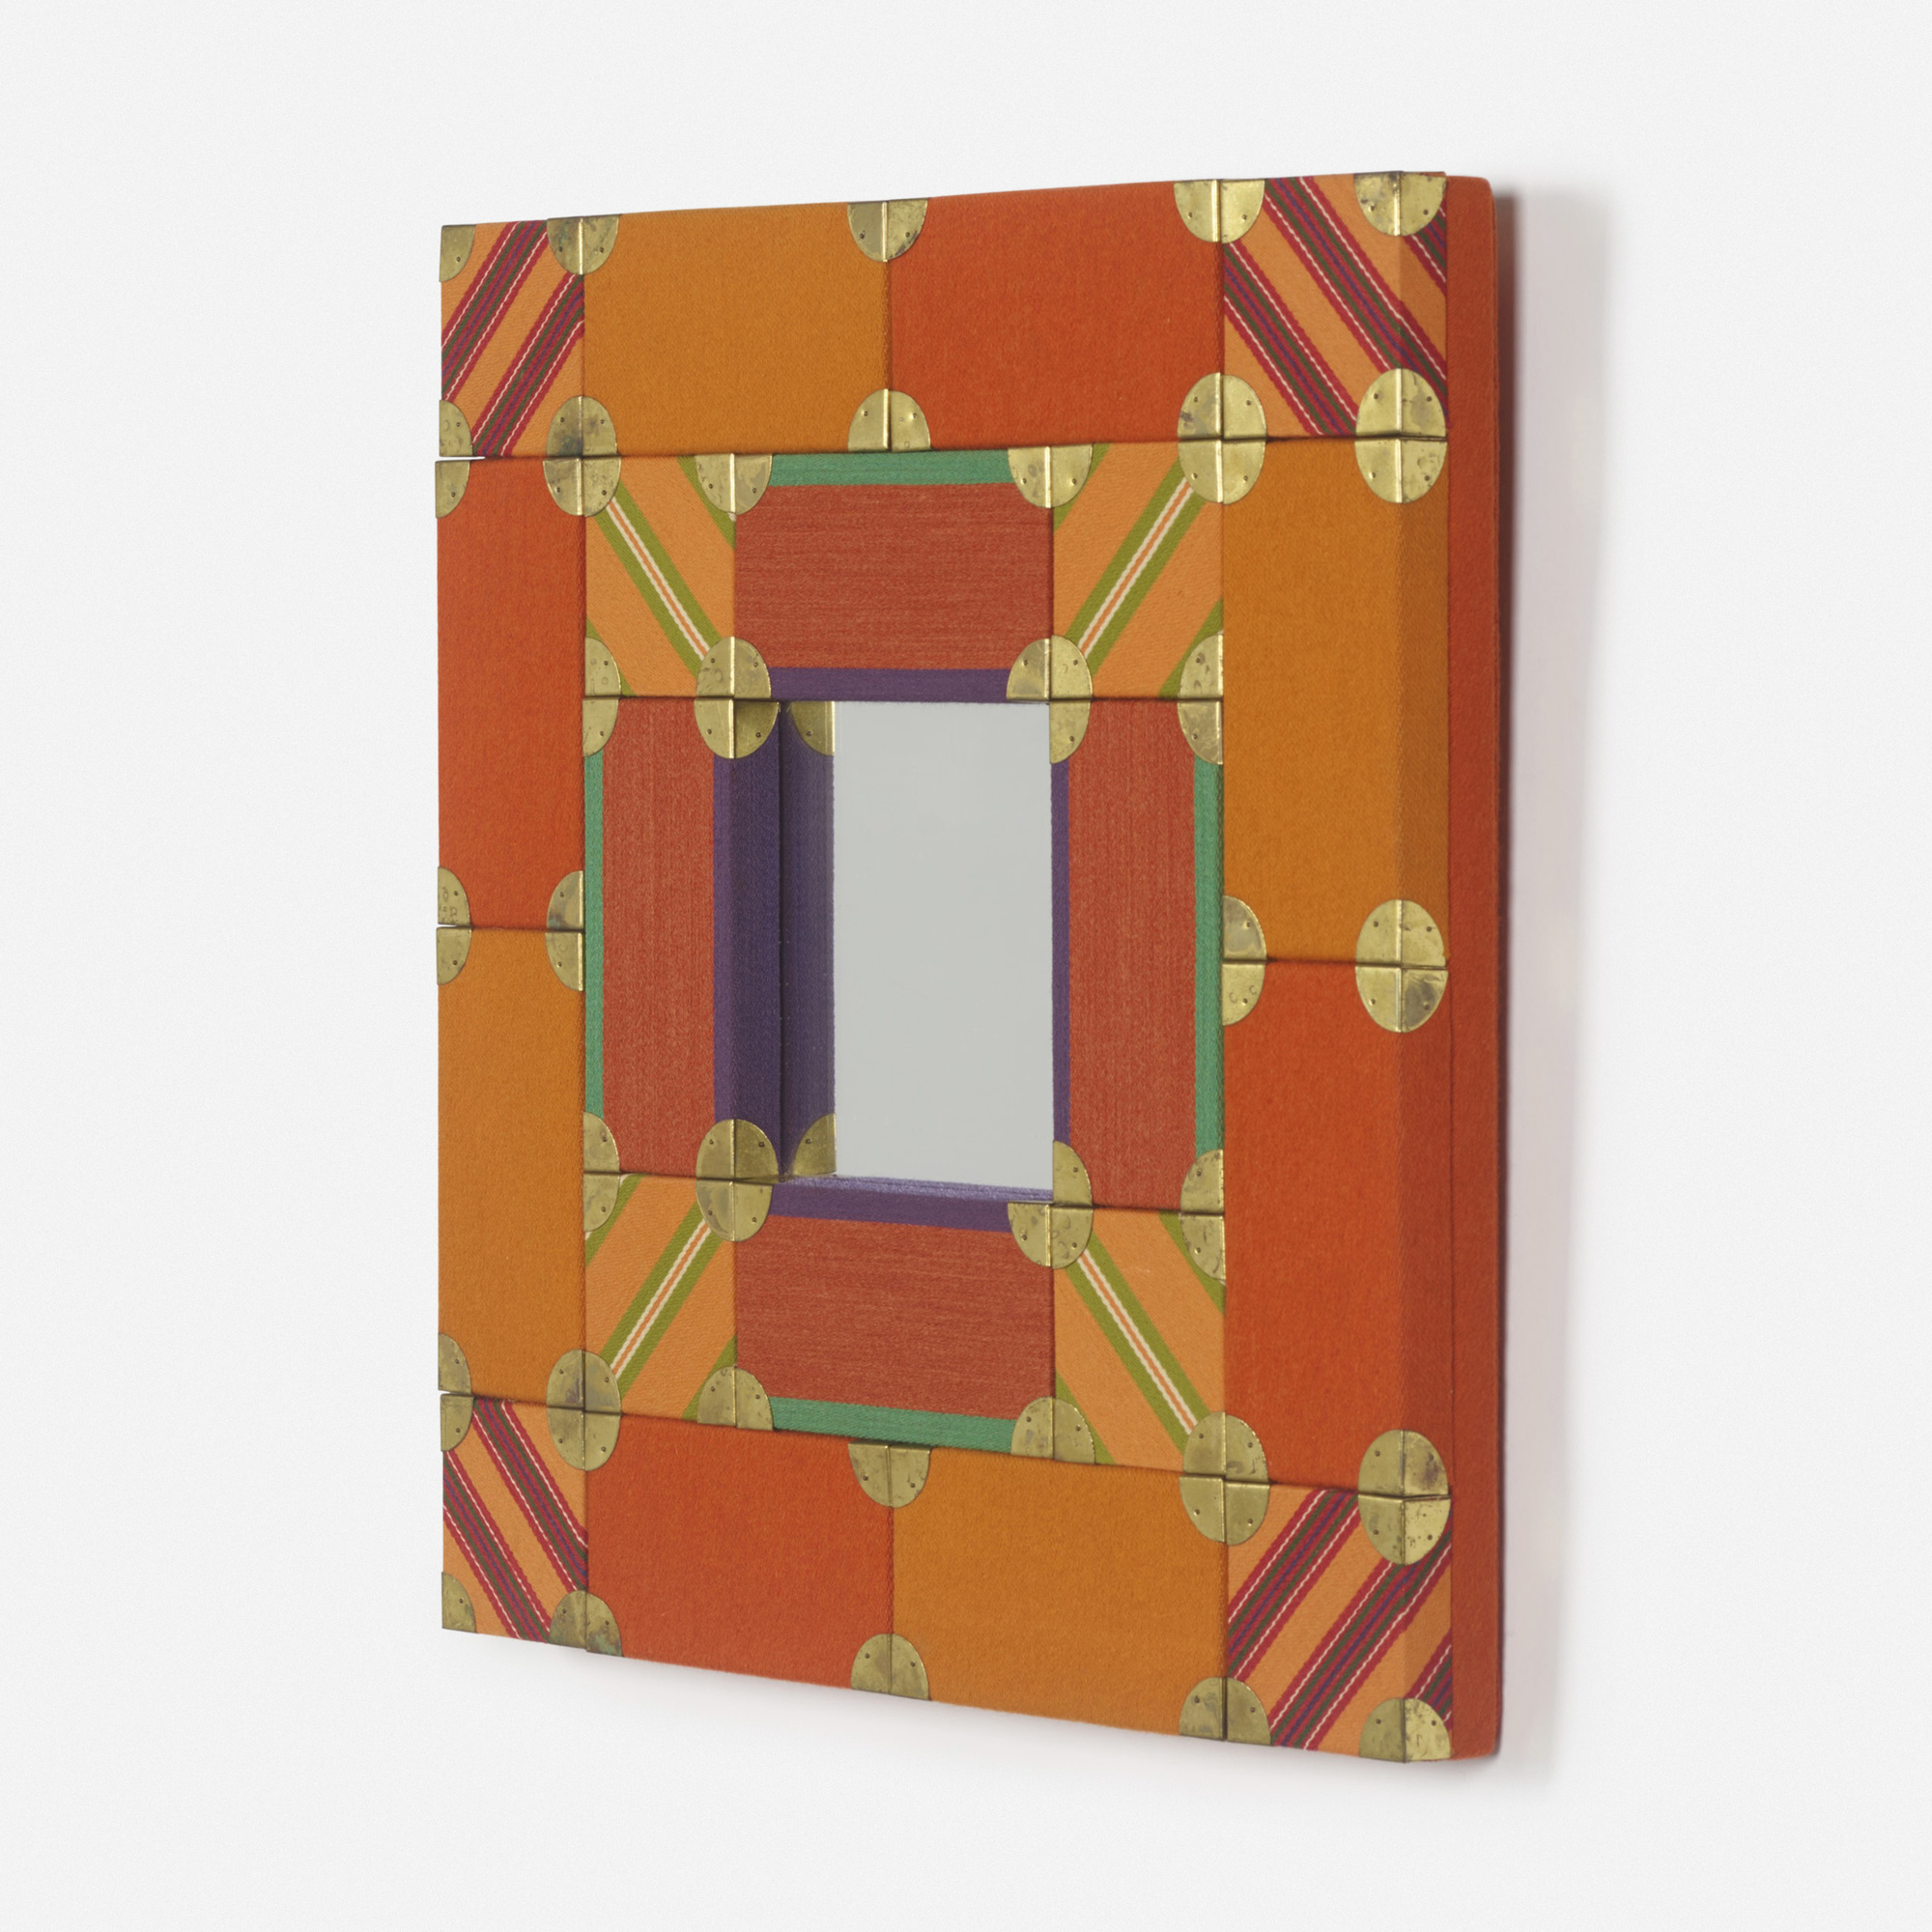 200: Alexander Girard / mirror for Textiles & Objects (2 of 2)